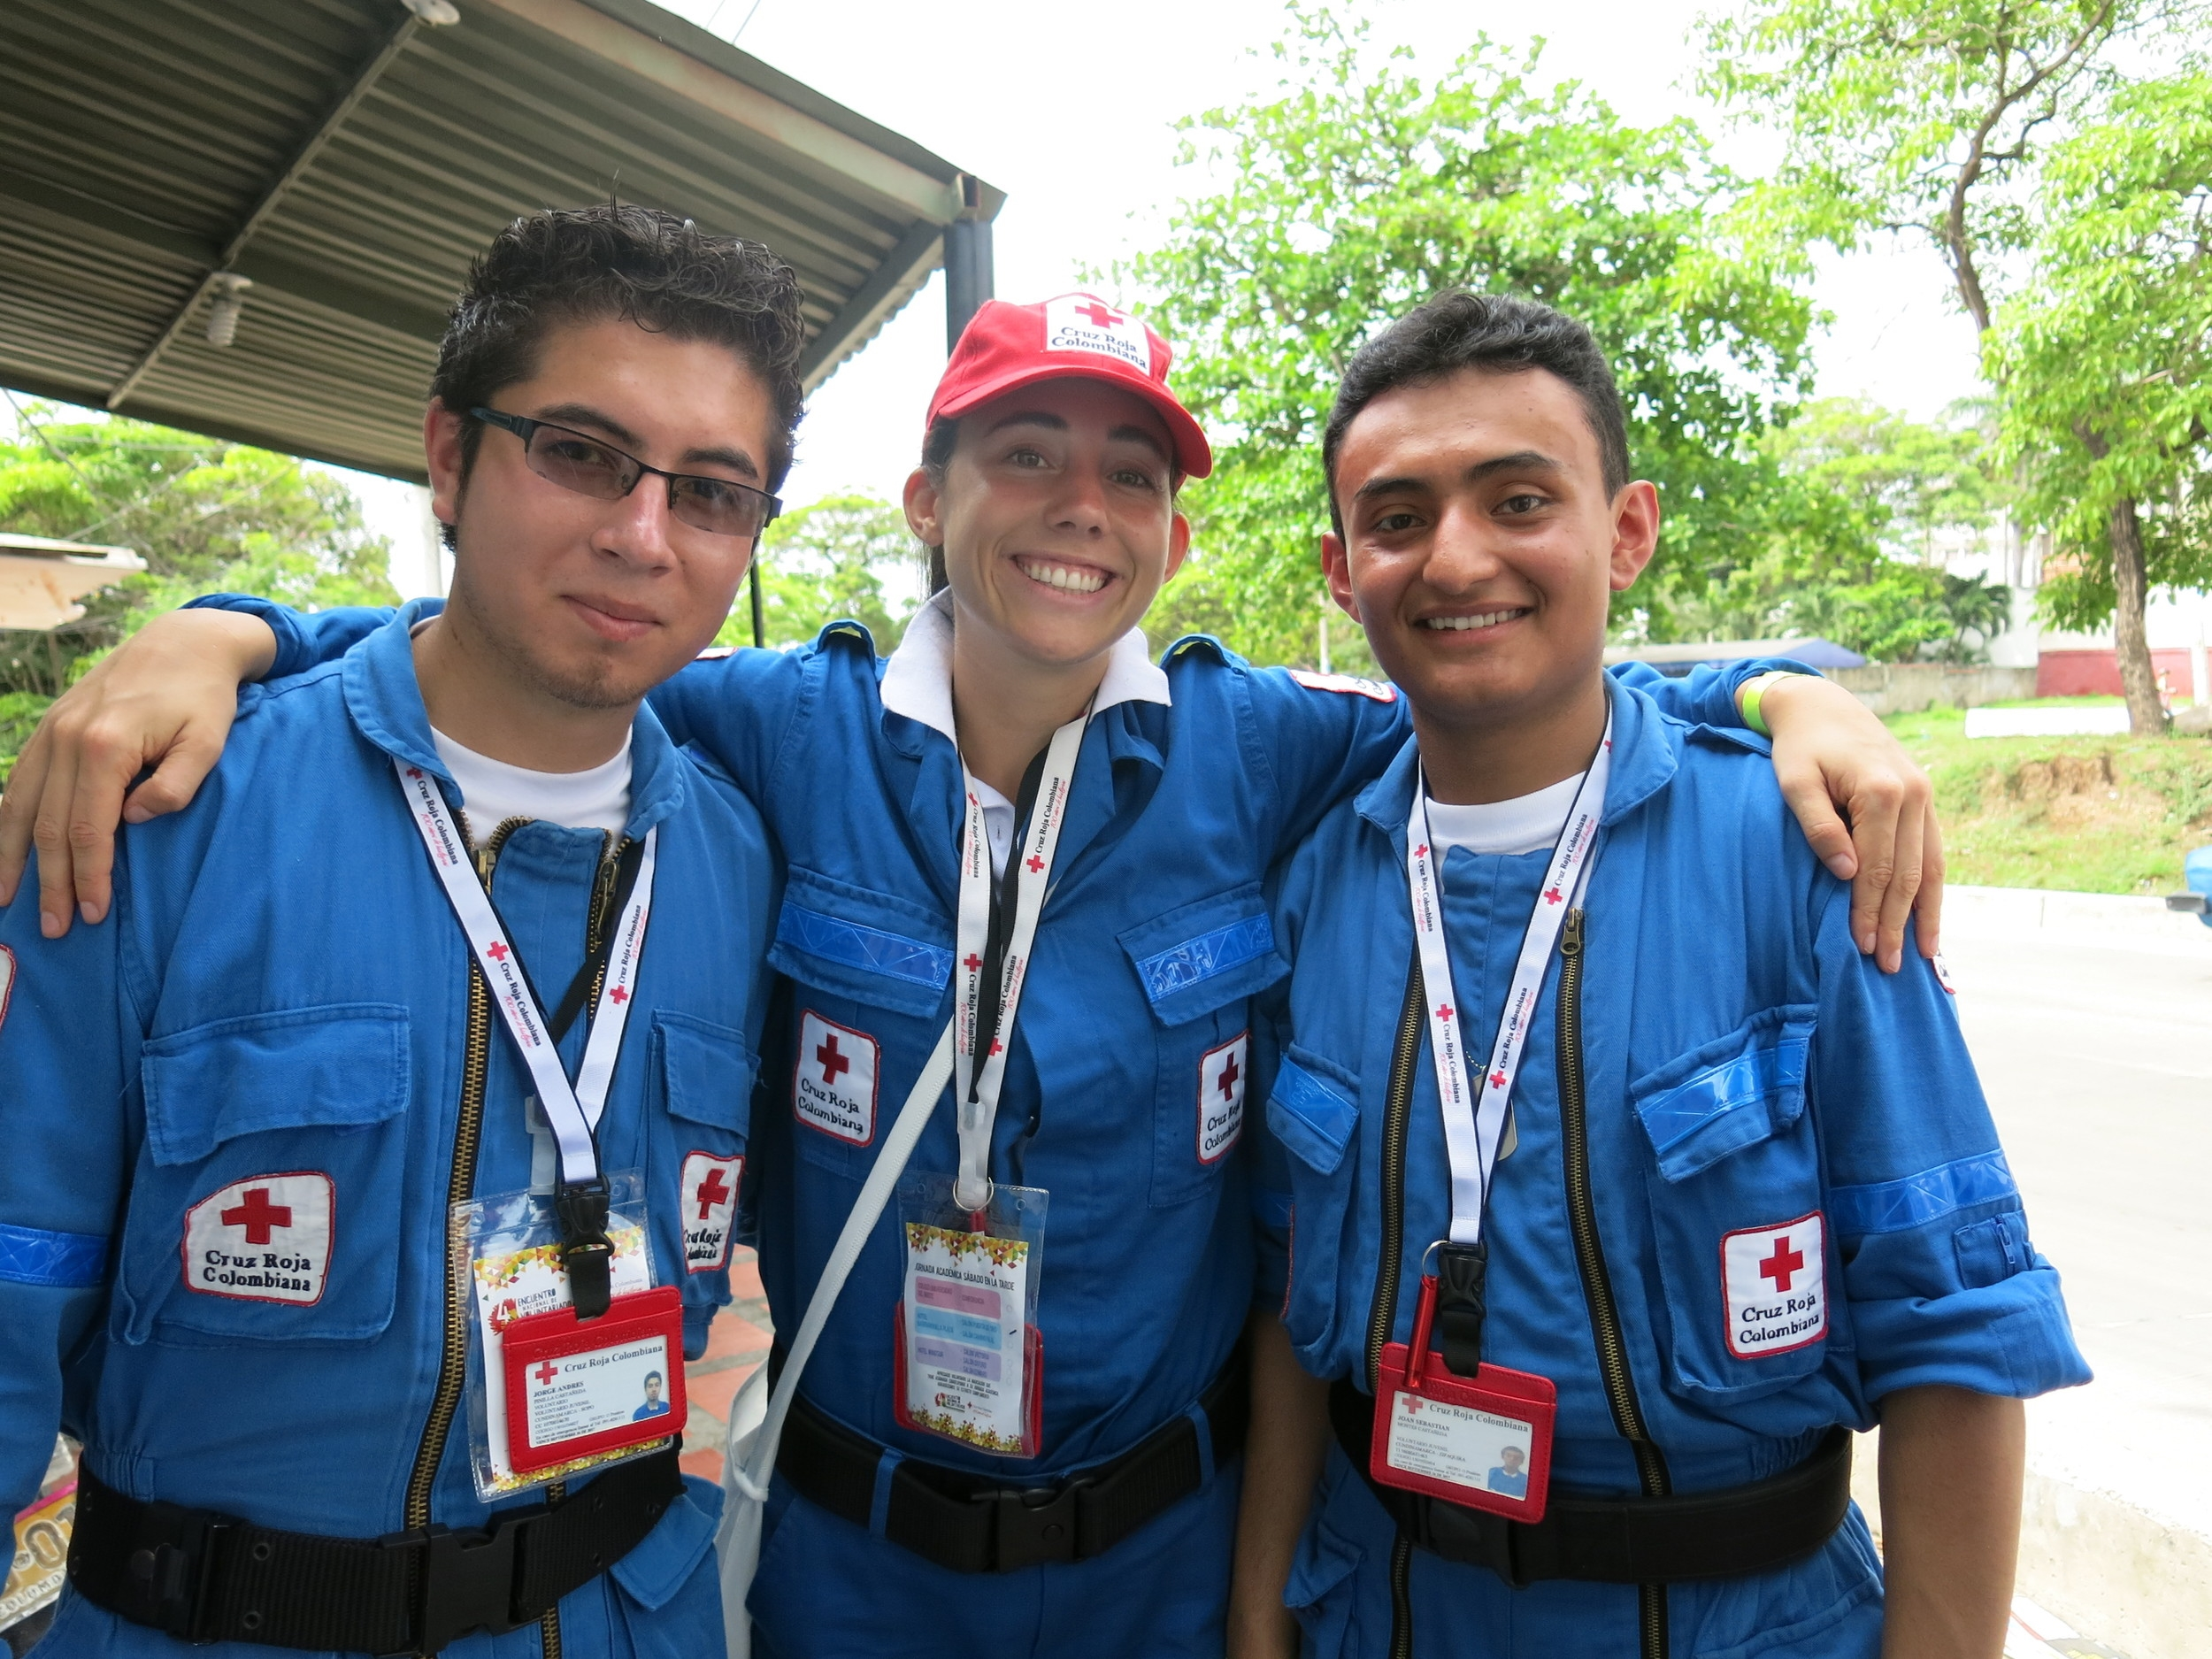 Sara con Andres y Joan, su equipo durante el día de trabajo comunitaria. Sara with Joan and Andres, her team during the community health day.